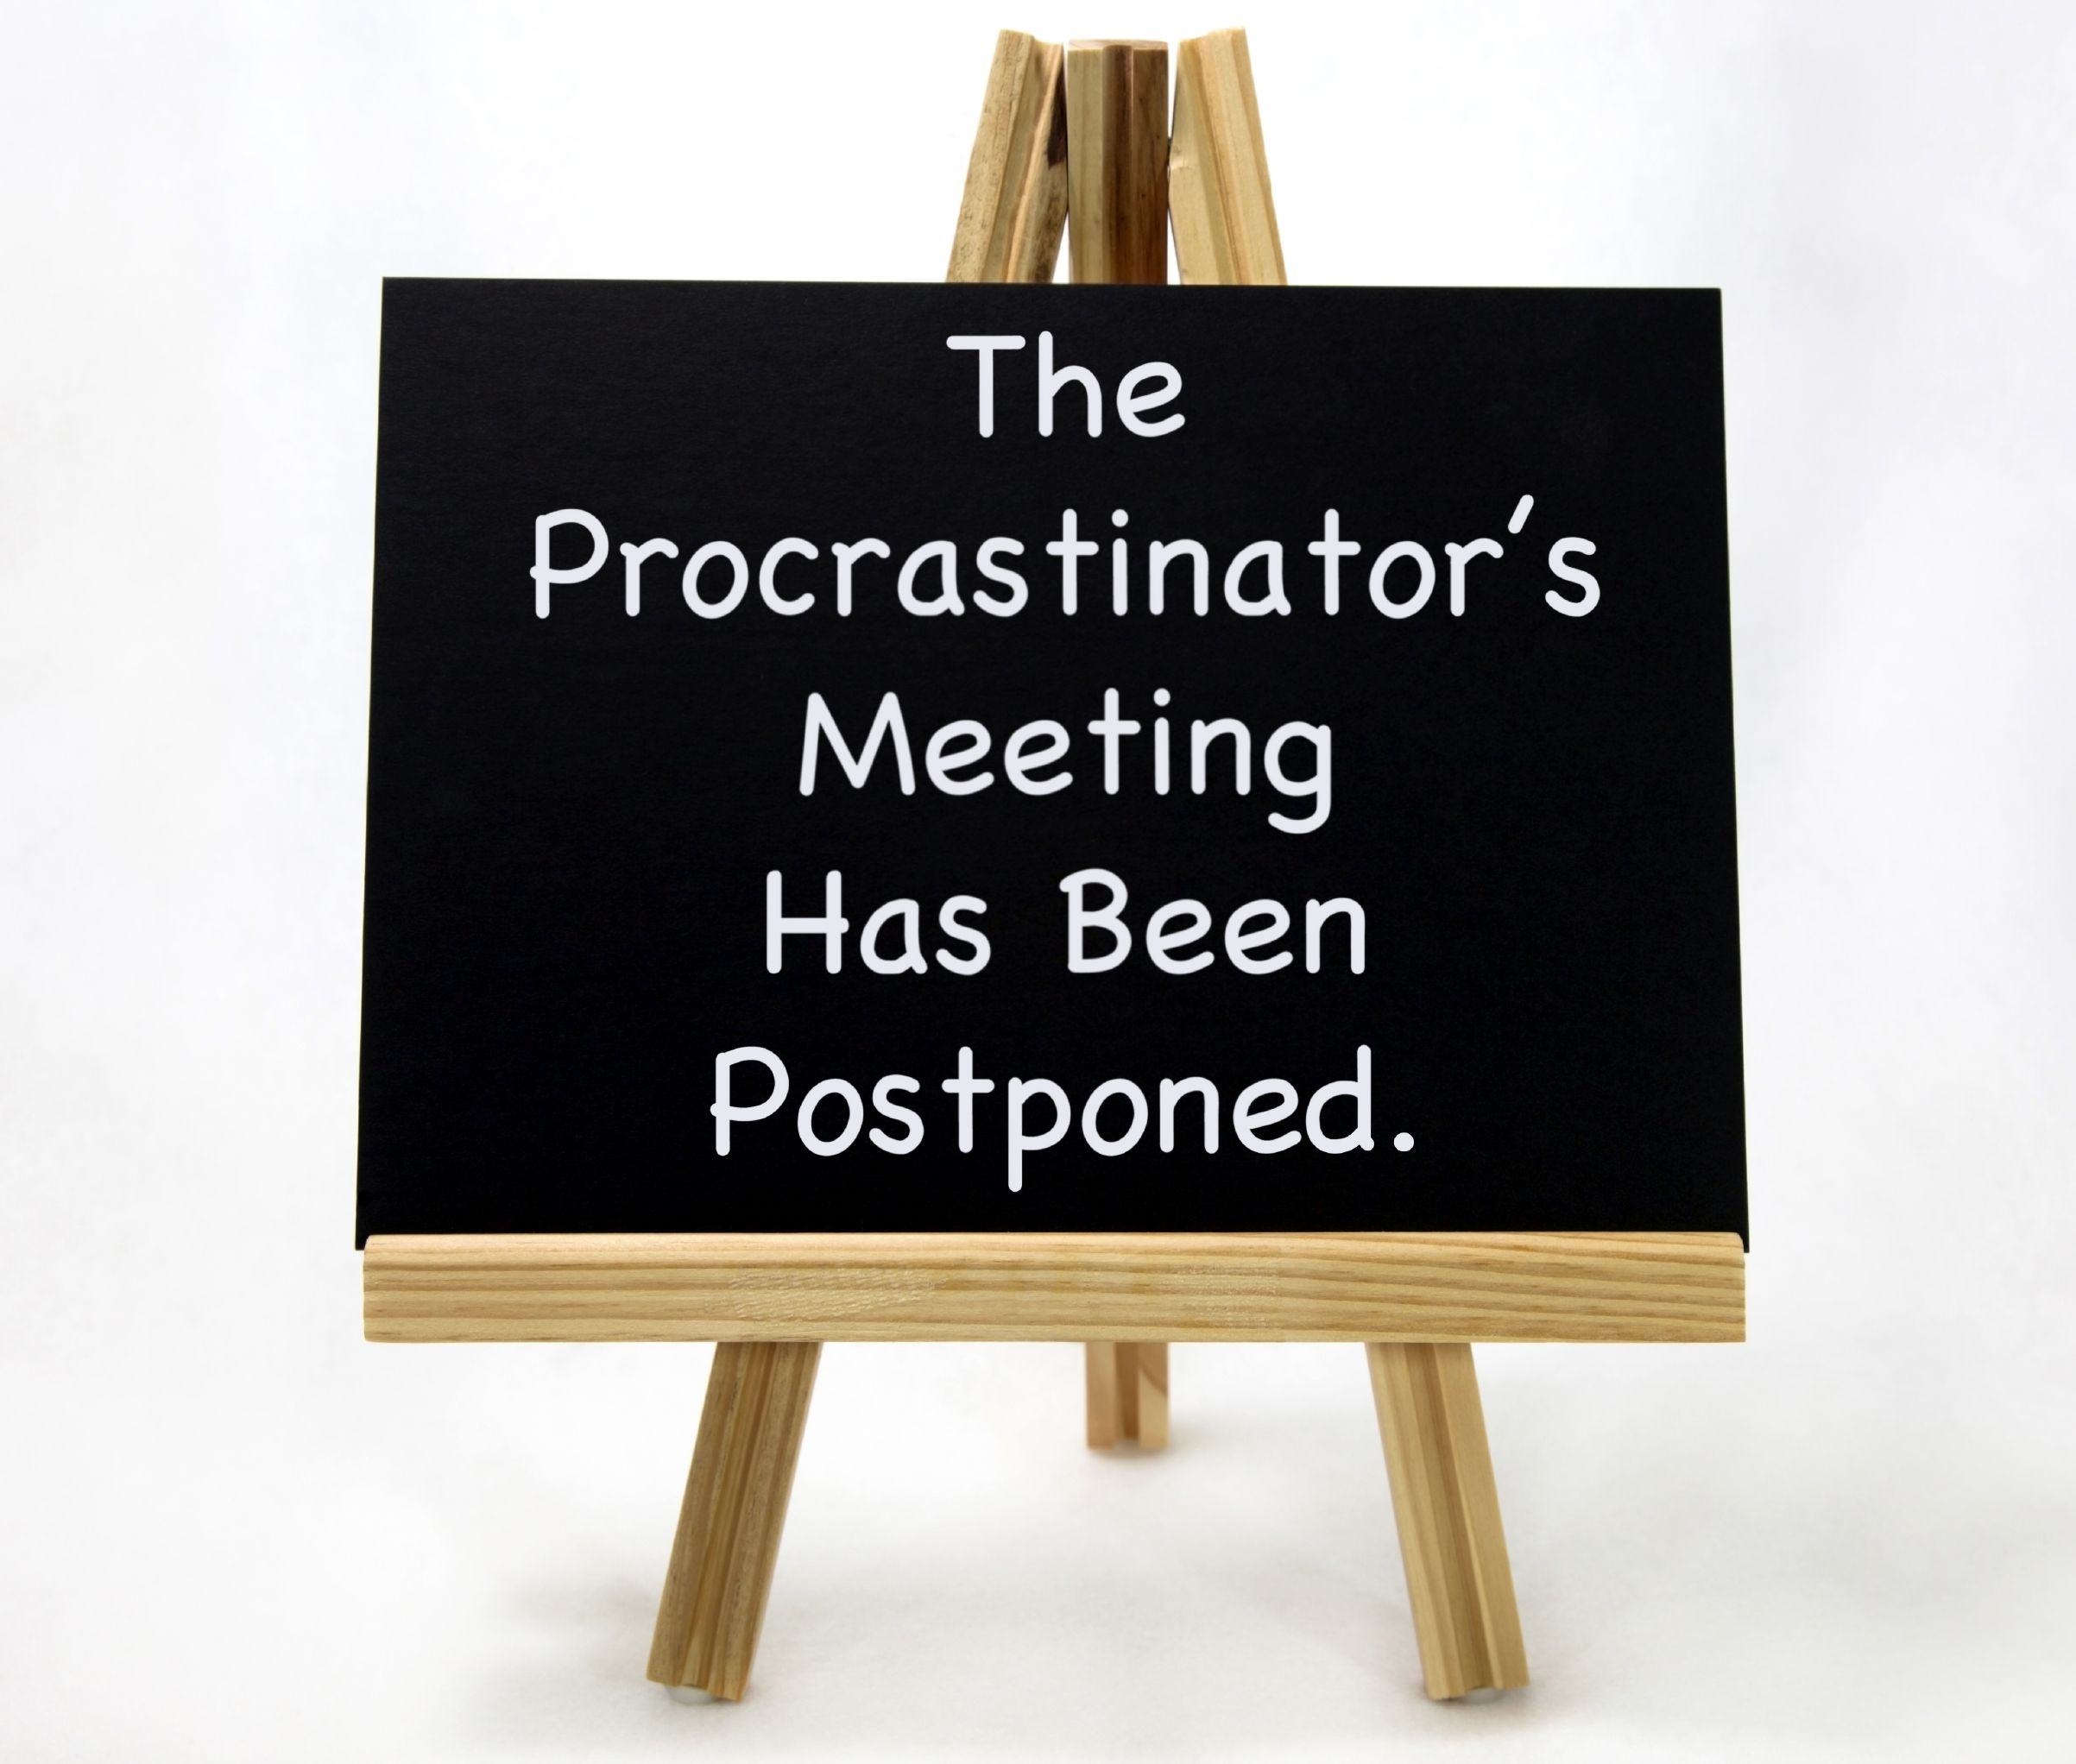 Is Procrastination Stopping You from Fulfilling Your Dreams?